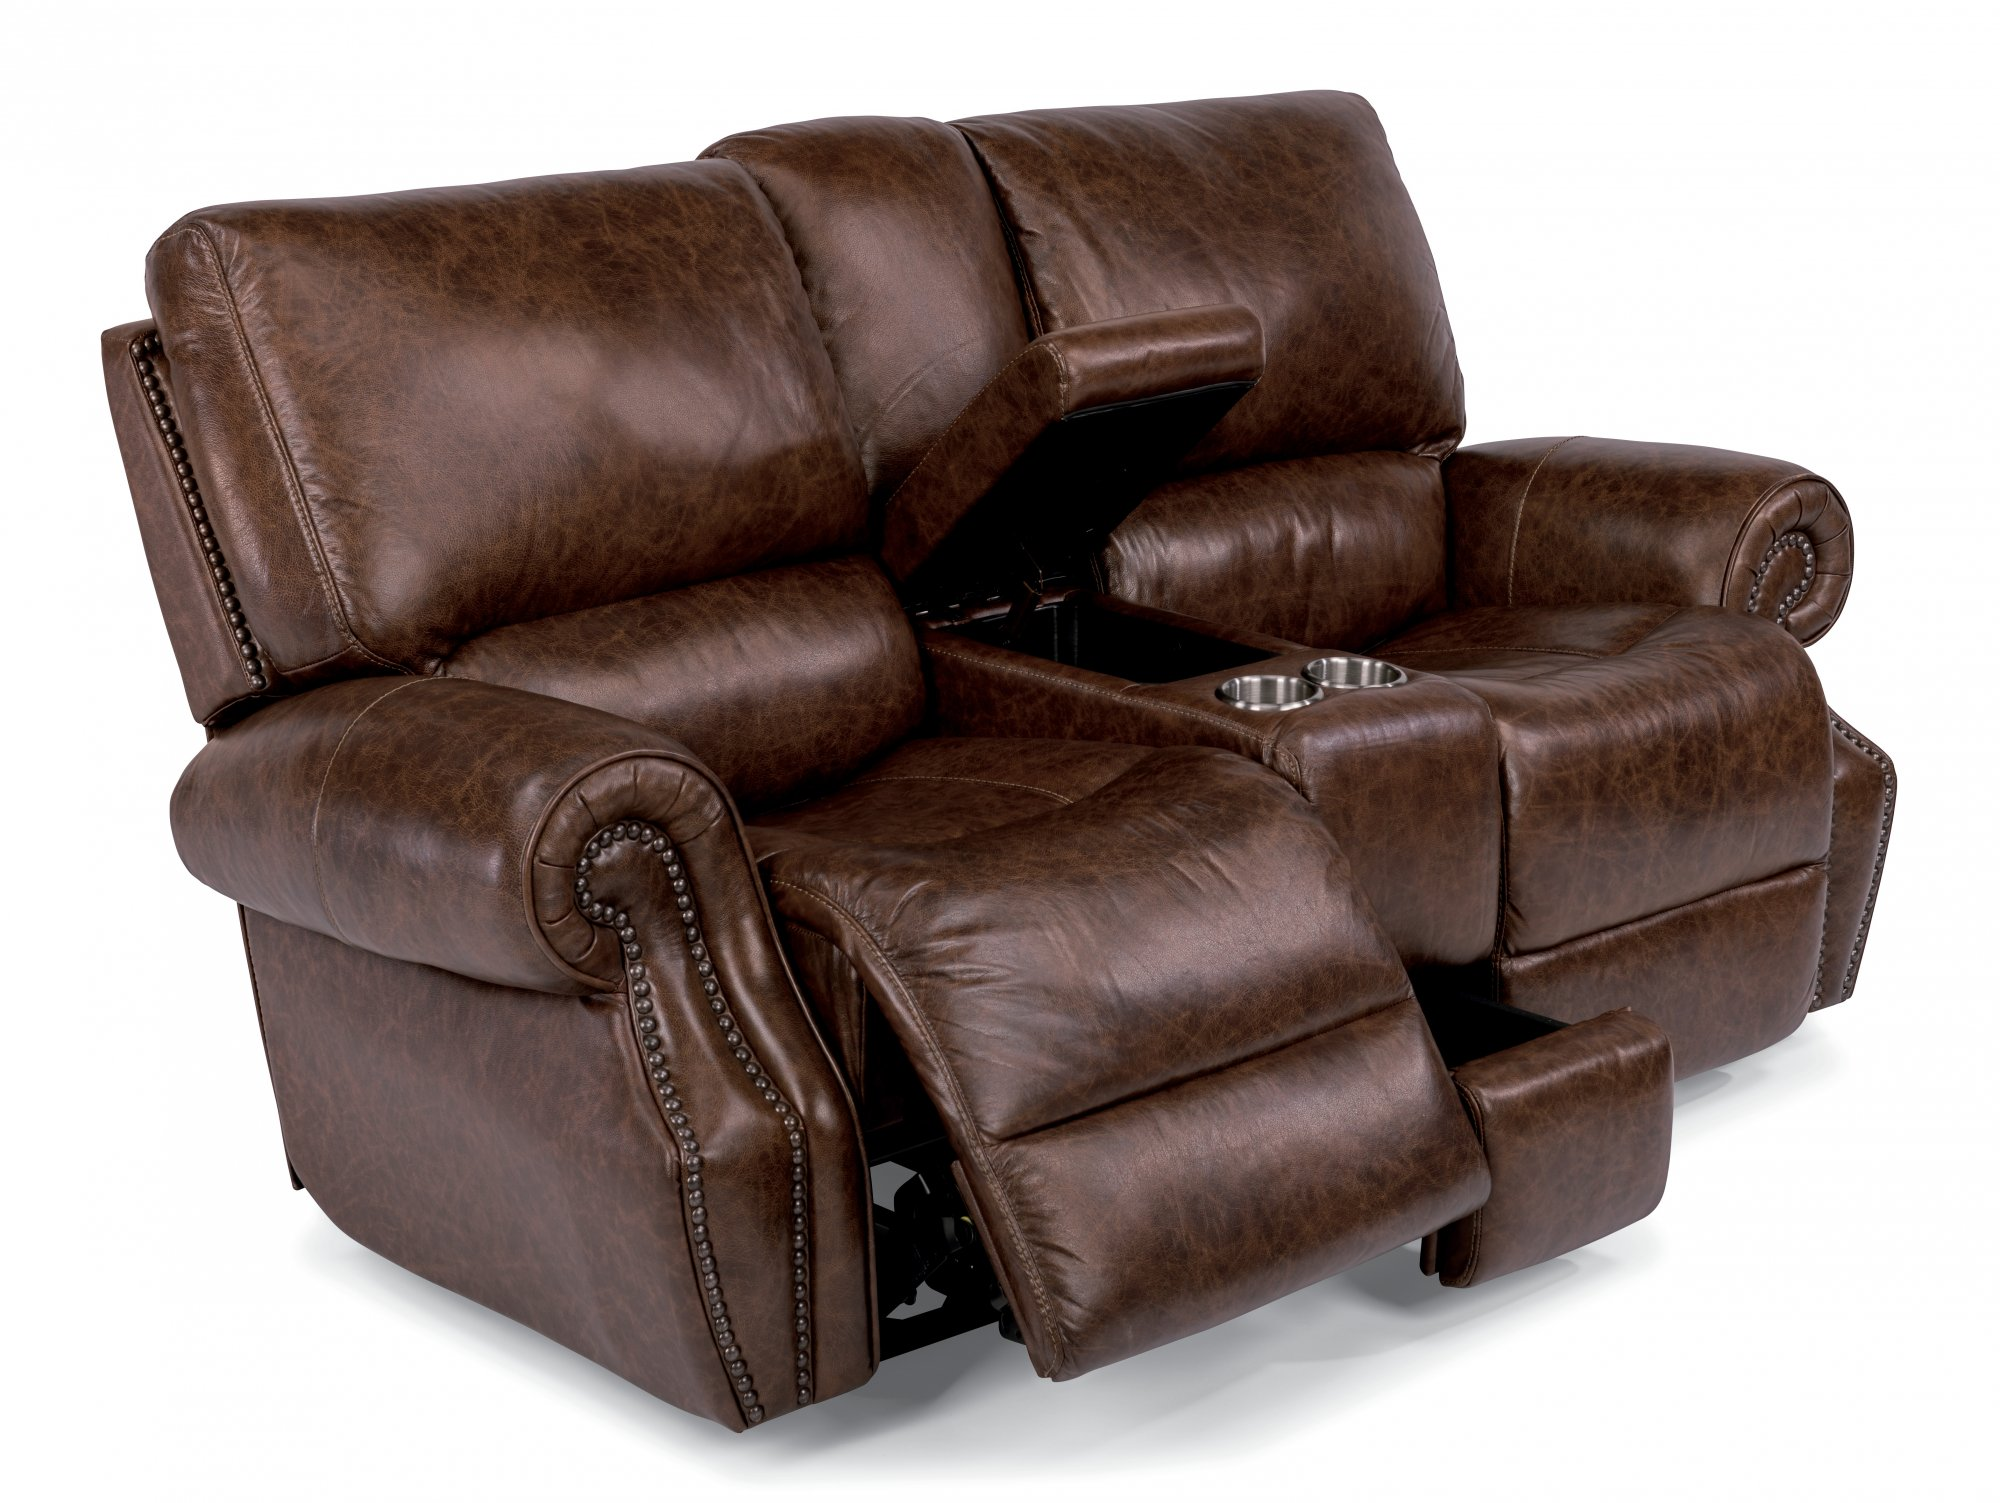 80 Inch Couch Full Size Living Roomleather Sofa With